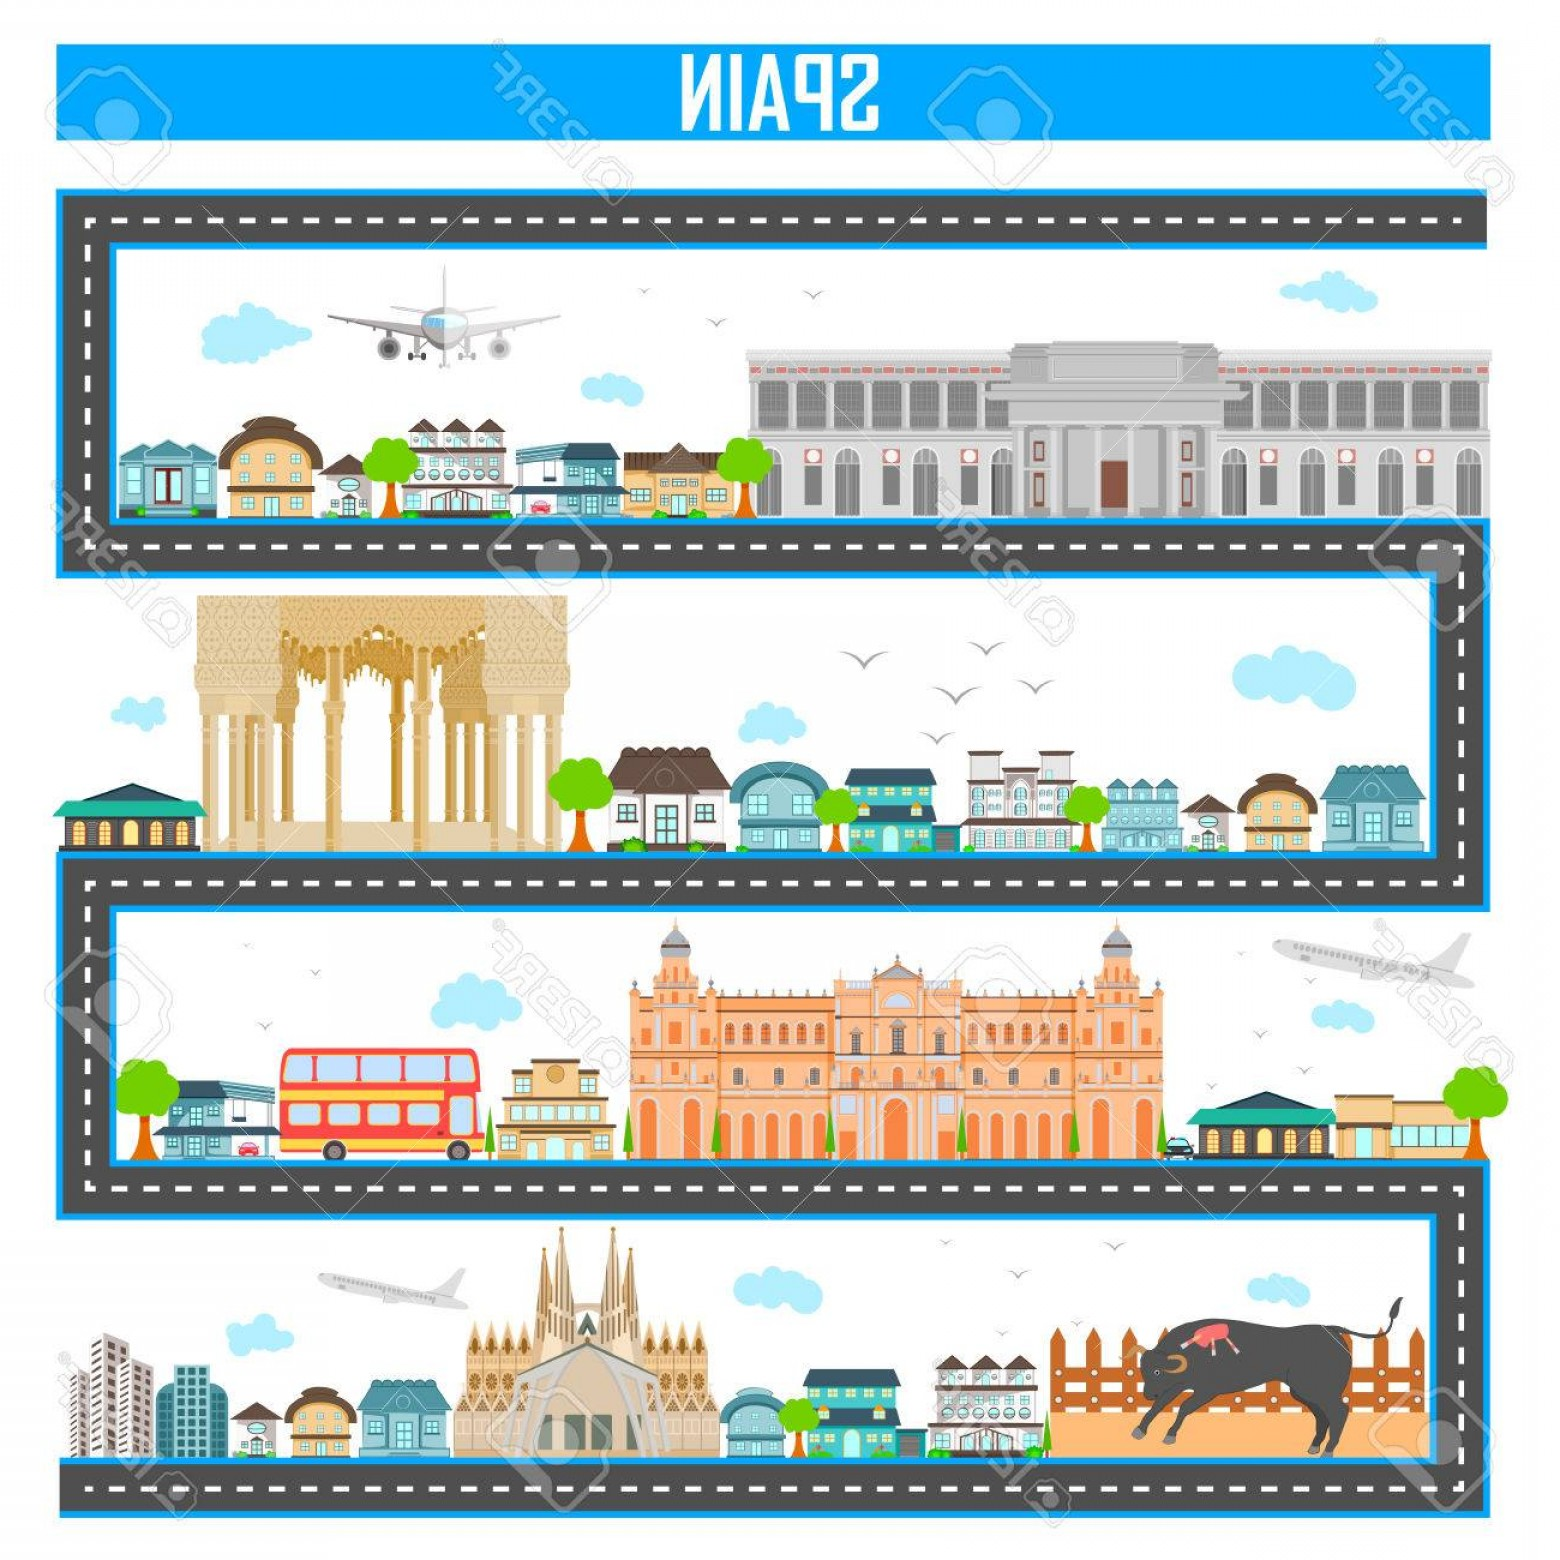 Famous Easy Vectors: Photostock Vector Easy To Edit Vector Illustration Of Cityscape With Famous Monument And Building Of Spain